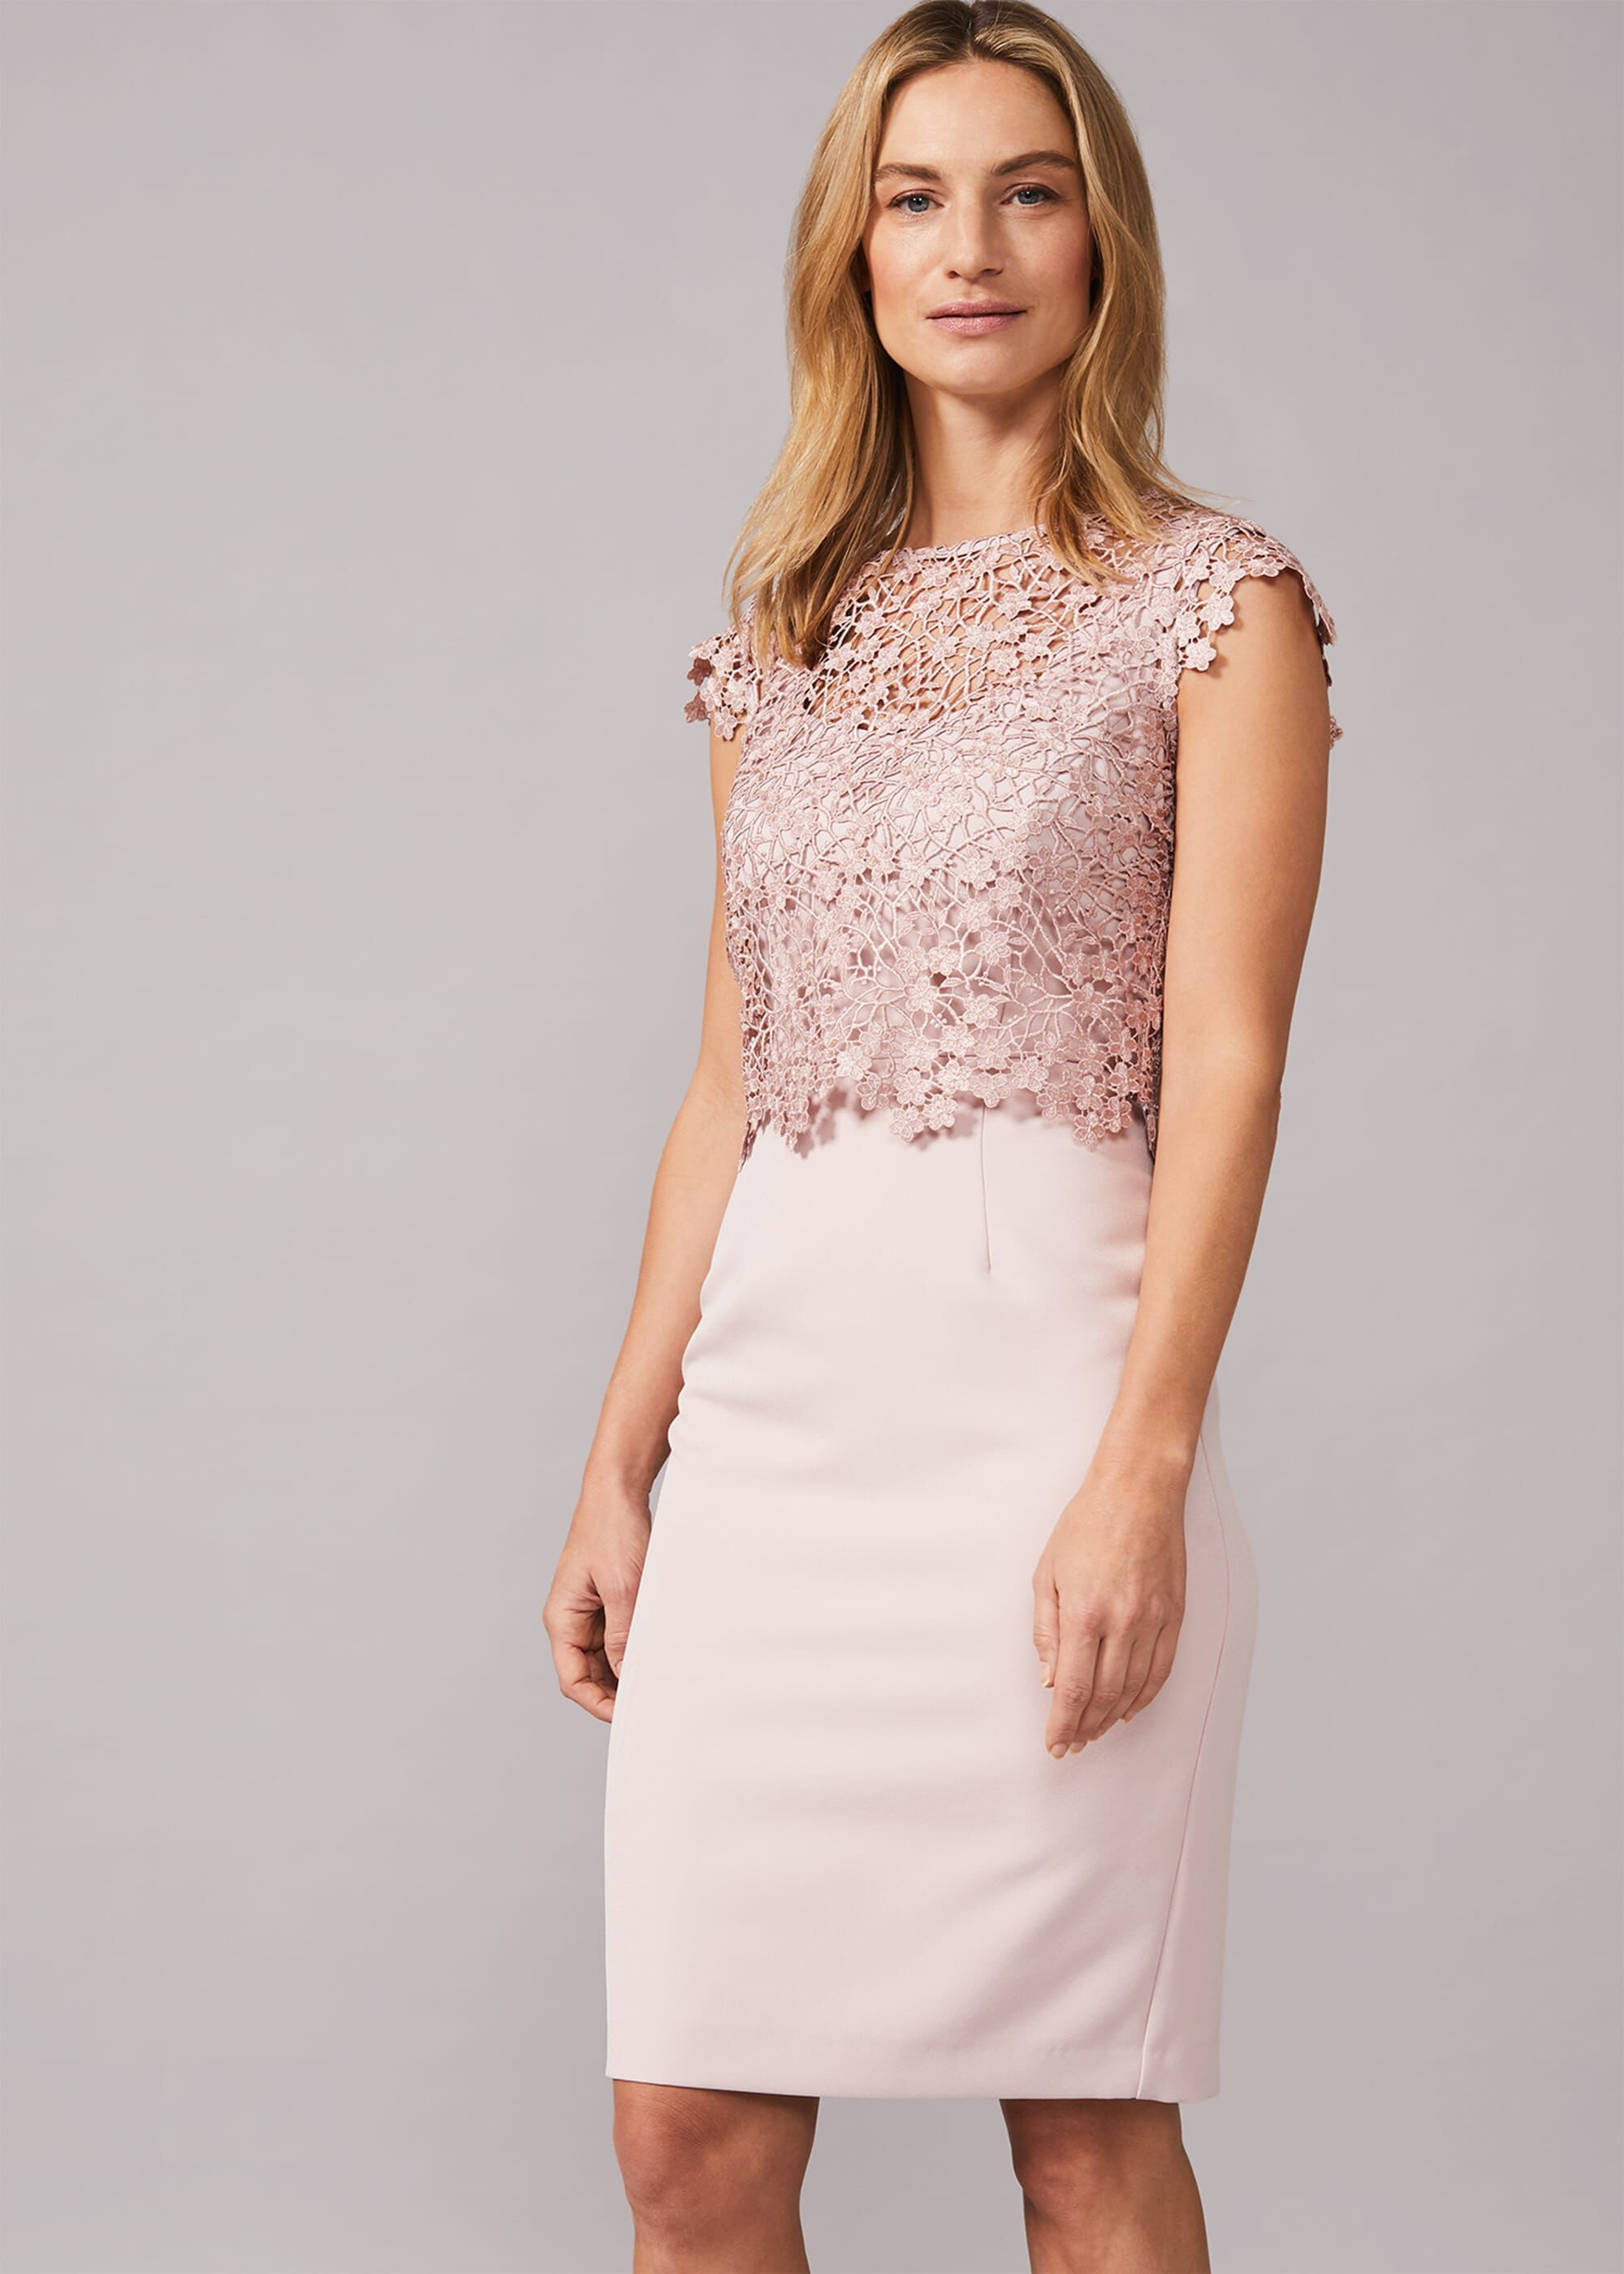 Phase Eight Mariposa Double Layered Dress, Pink, Fitted, Occasion Dress